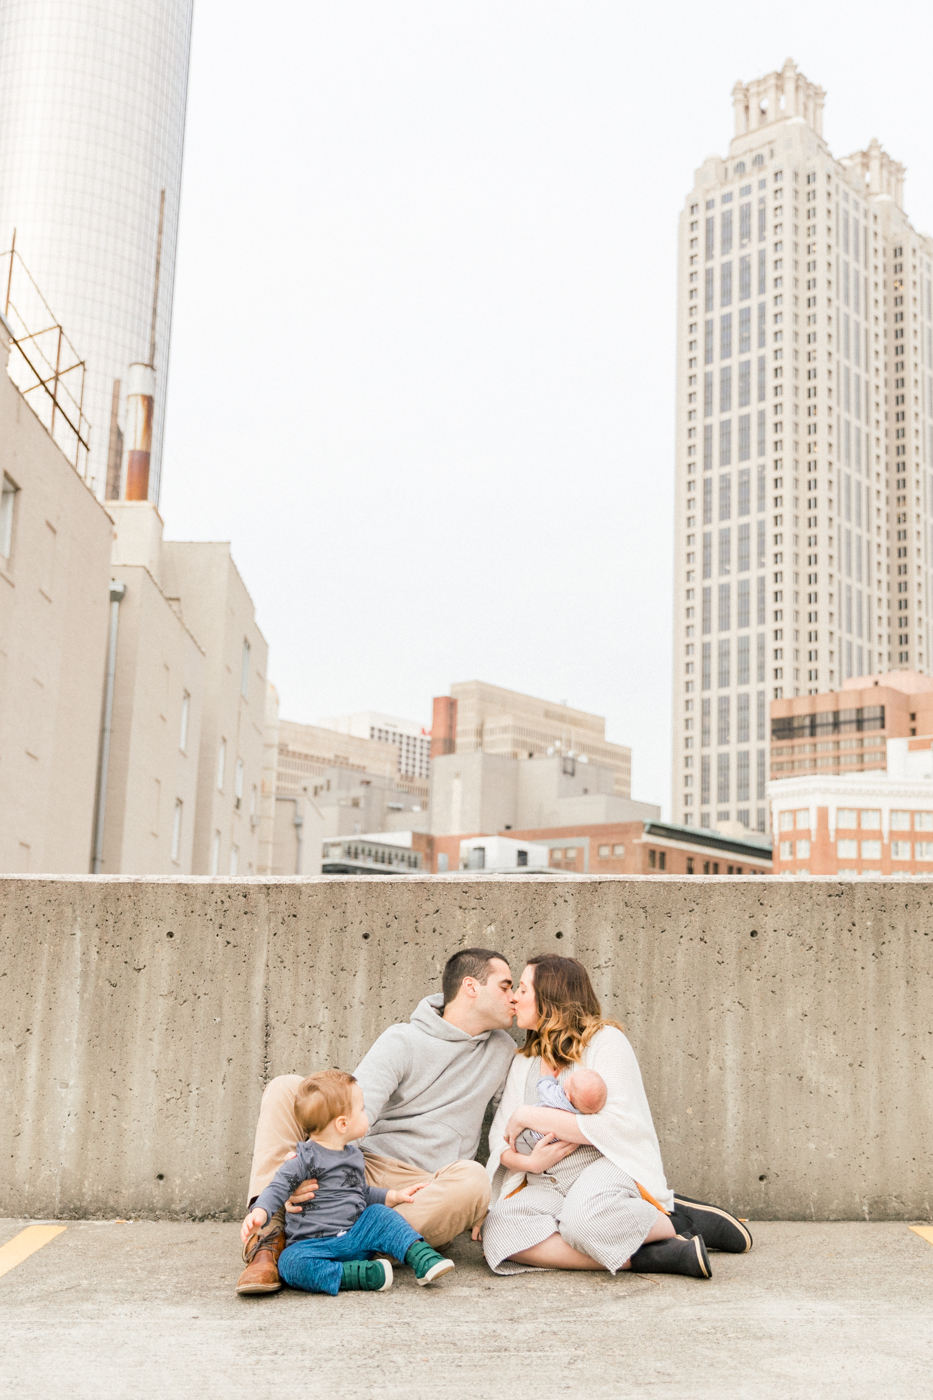 four corners photography atlanta newborn photographer atlanta maternity photography downtown atlanta family session best atlanta newborn photographer-22.jpg